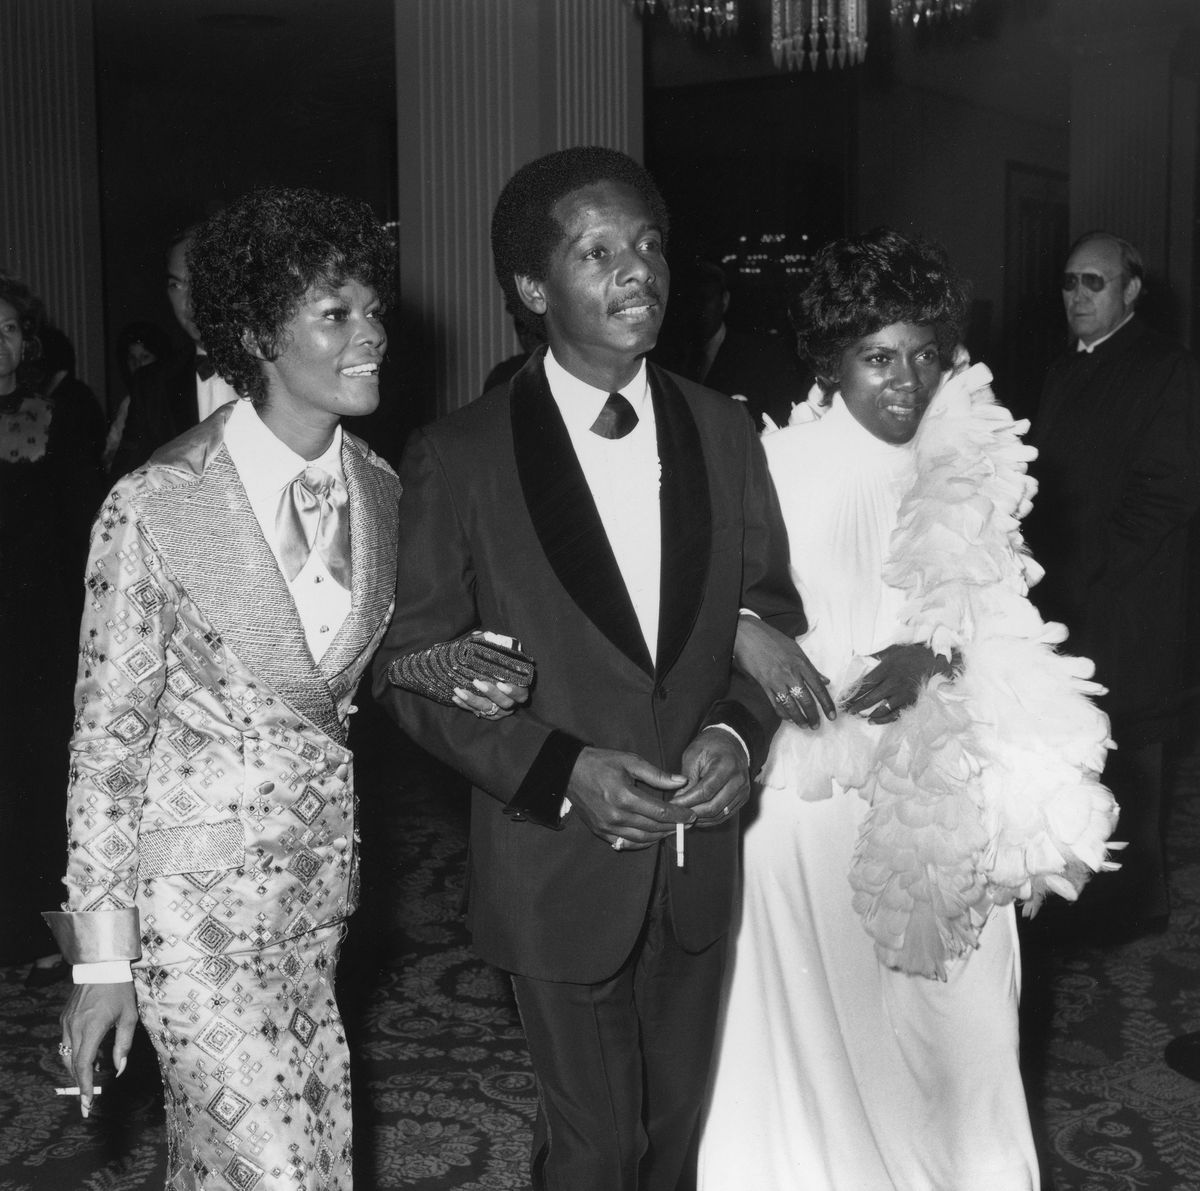 Dionne-Warwick-William-Elliott-Dee-Dee-1972-oscars